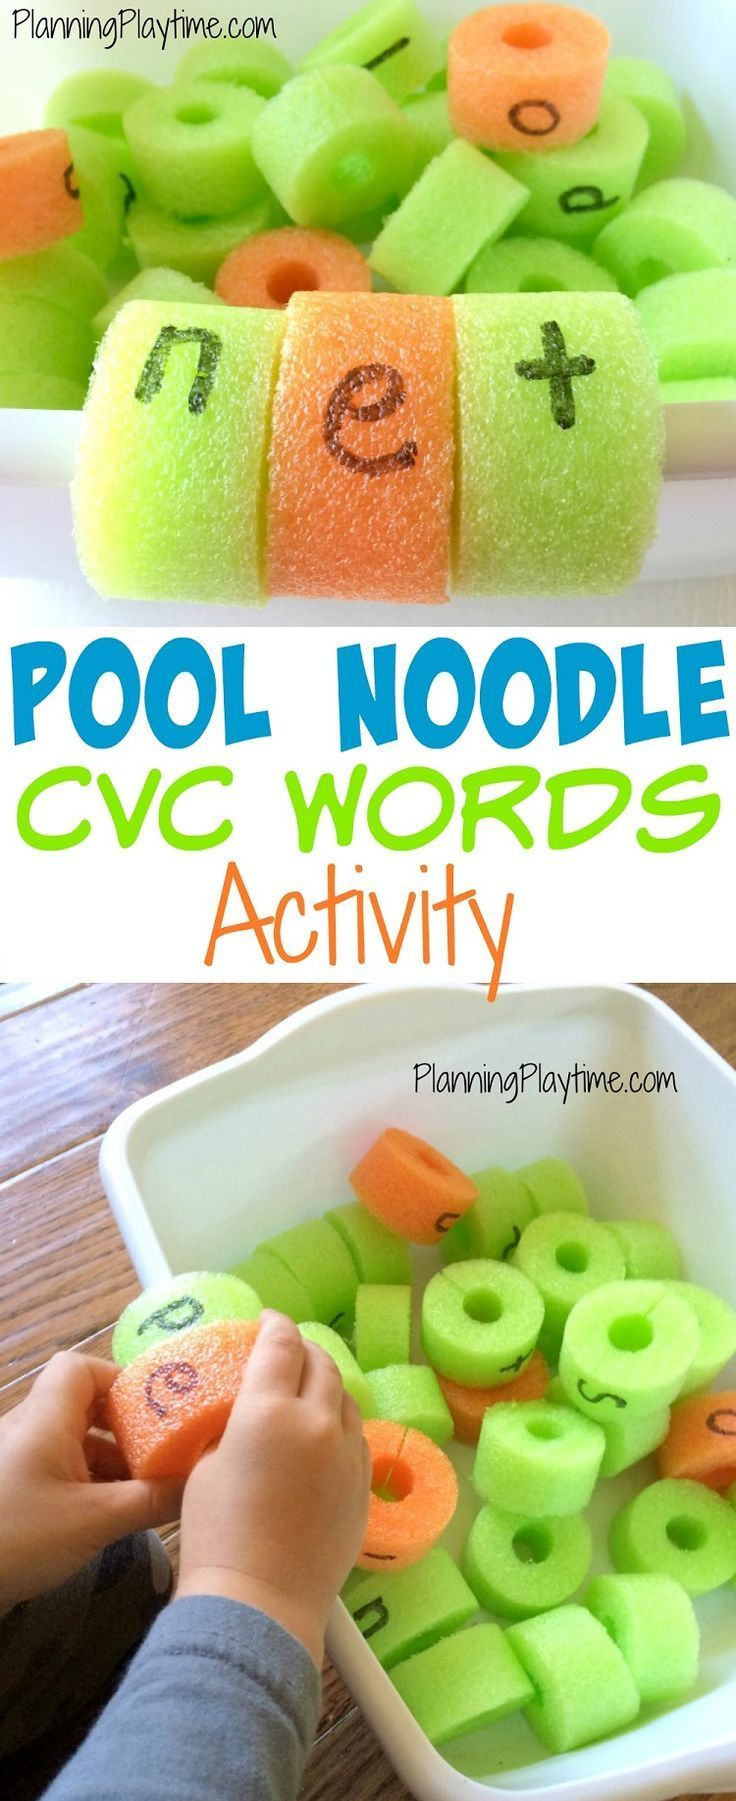 Pool Noodle CVC Words Activity - Cut a slit in the back and then clip the letters onto the edge of the tub. So fun! - Could work in a kiddie pool too.